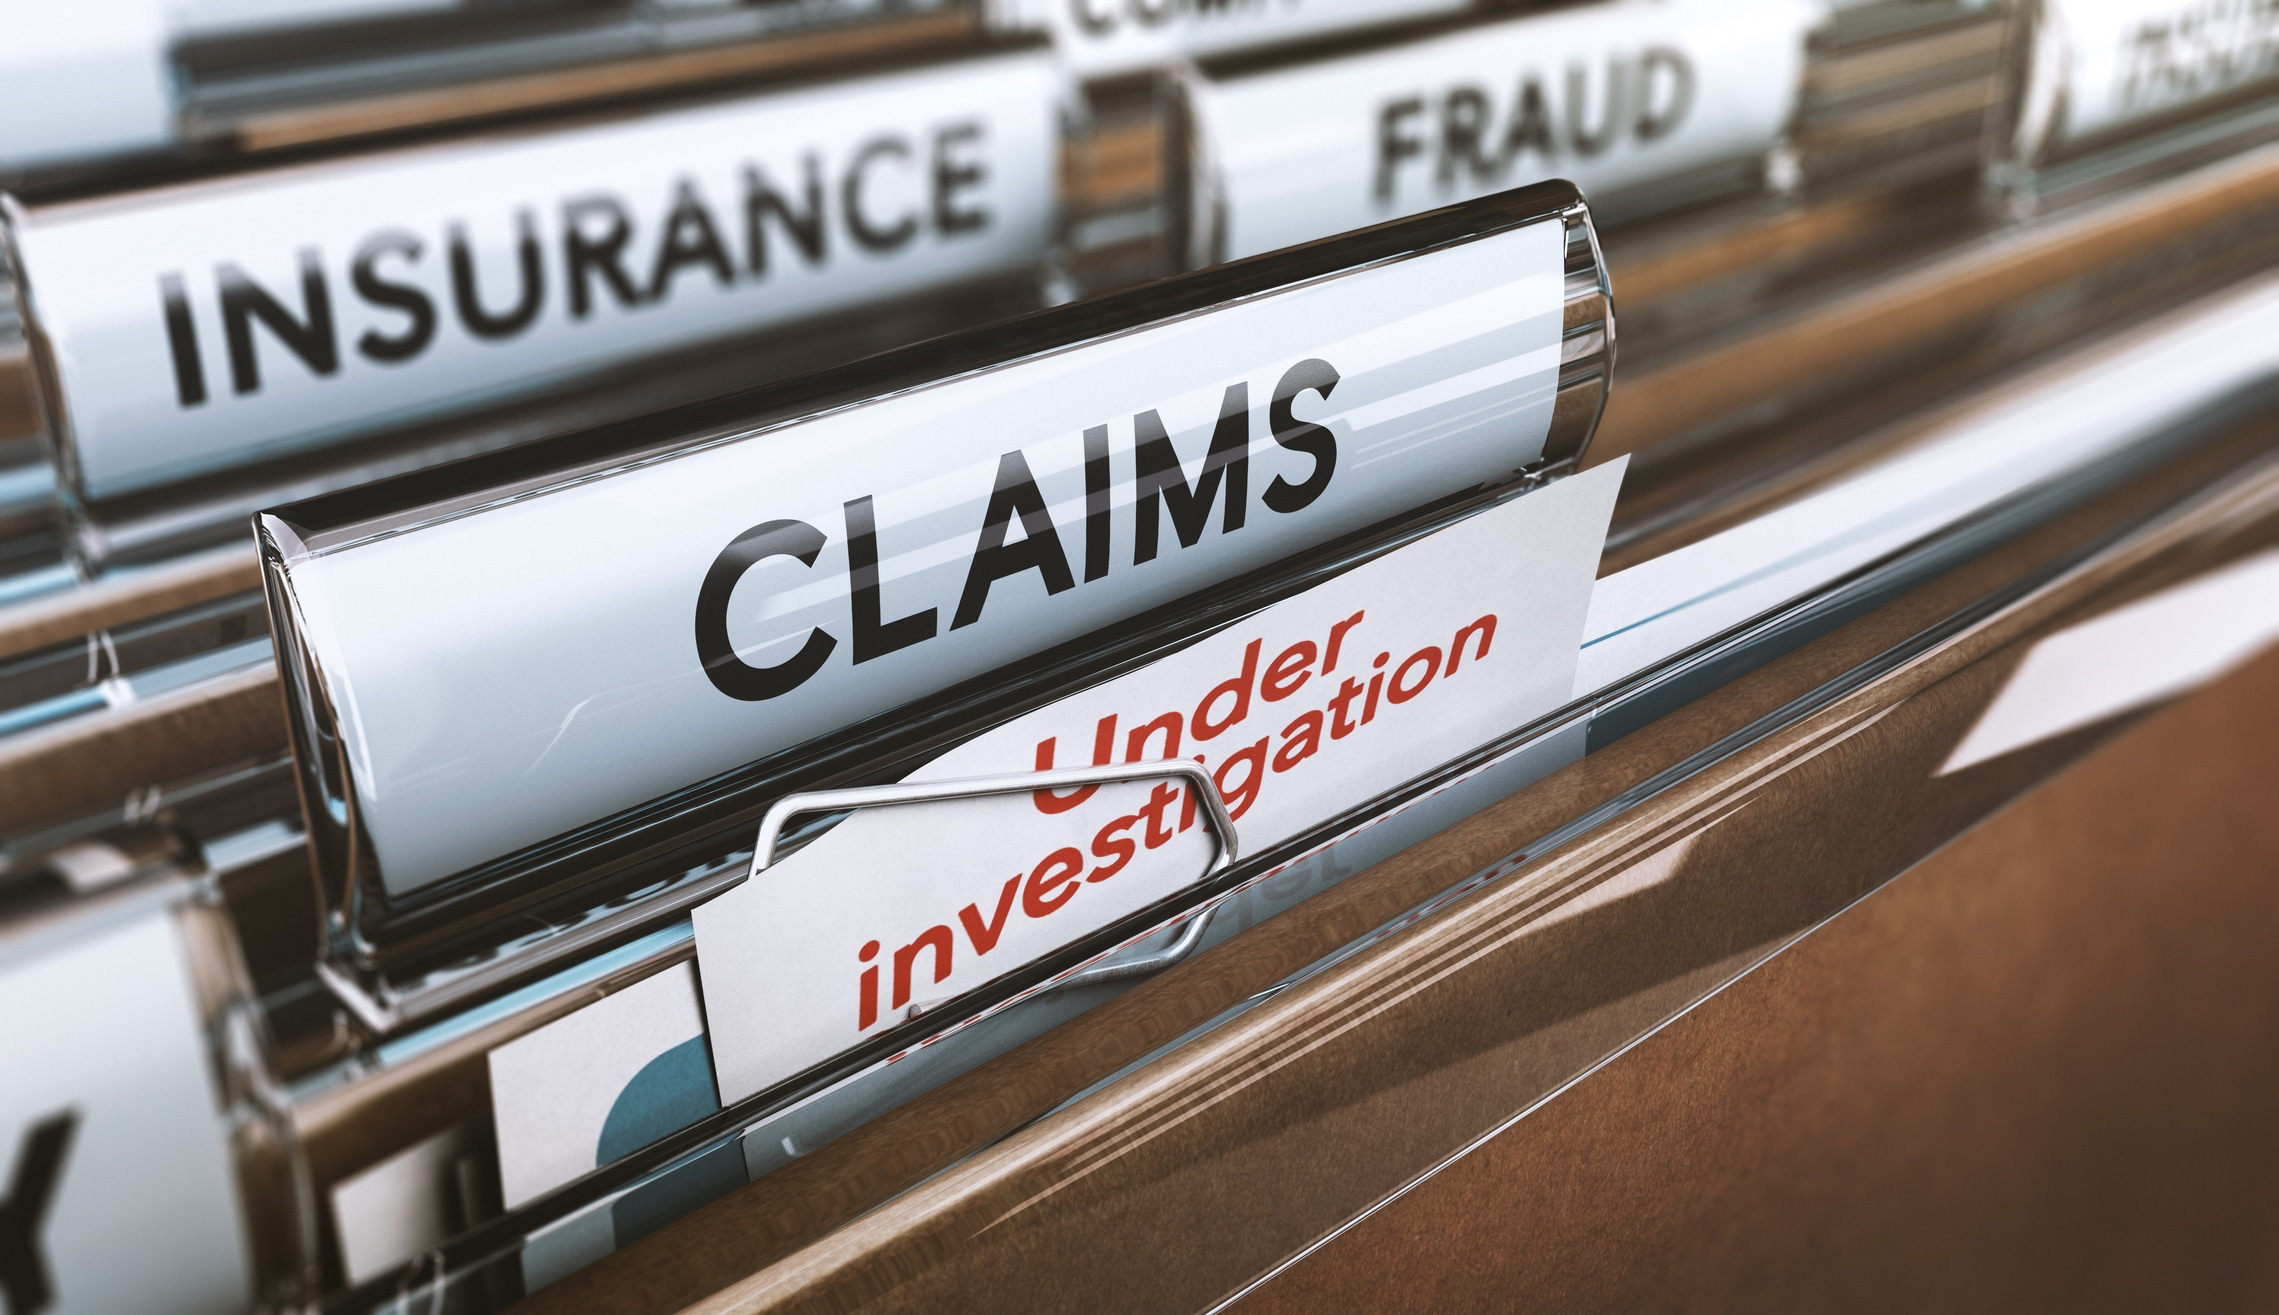 Get Answers to Your Questions about Bad Faith Duty to Defend Cases Involving Insurers